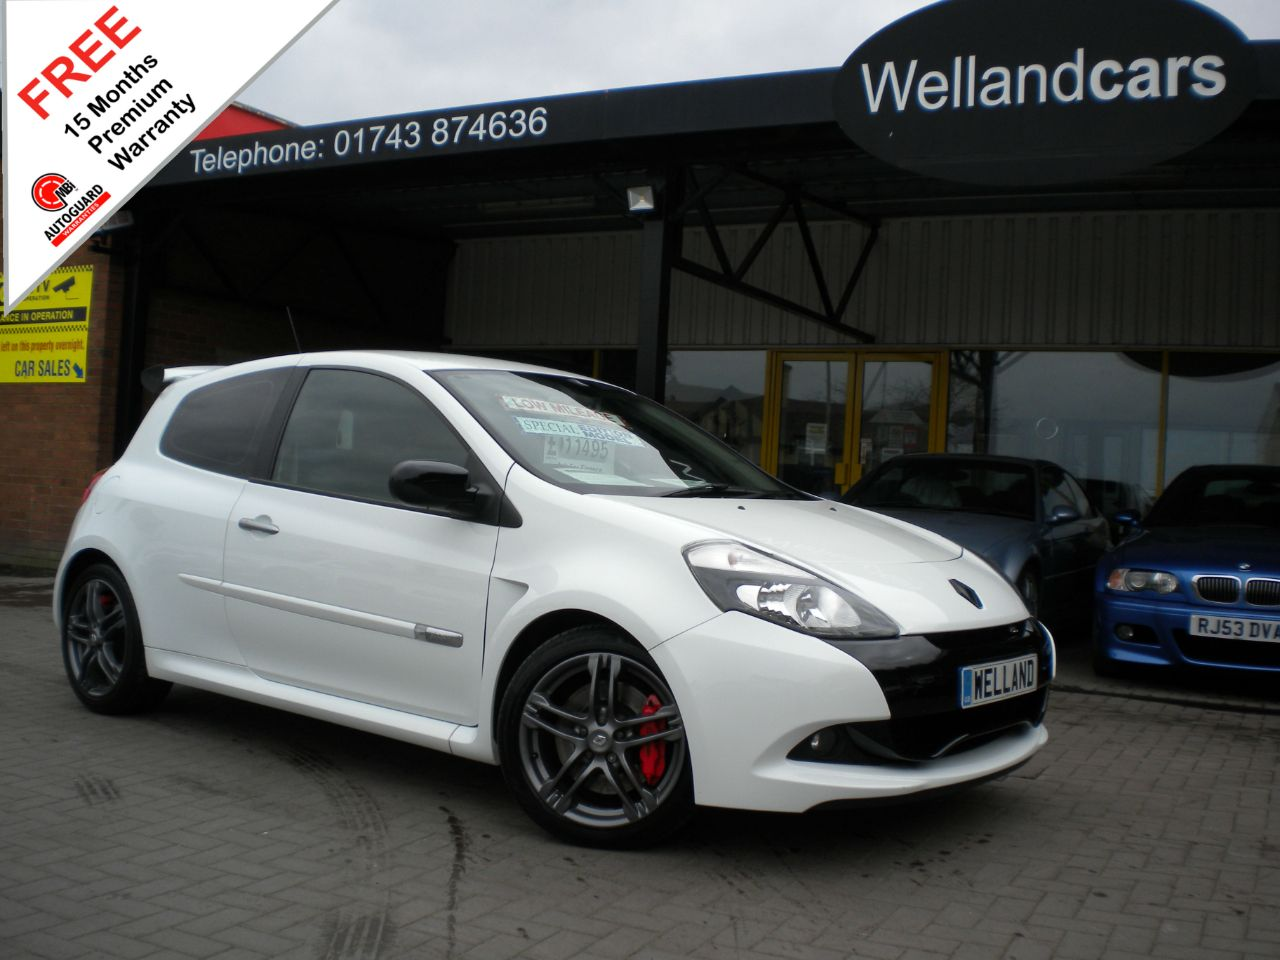 Renault Clio 2.0 16V RS 200 3dr,Only 20K Miles,F/S/H,Extreme Pack,Brembo Brakes #15 MONTH WARRANTY INCLUDED Hatchback Petrol Glacier White at Welland Cars Shrewsbury